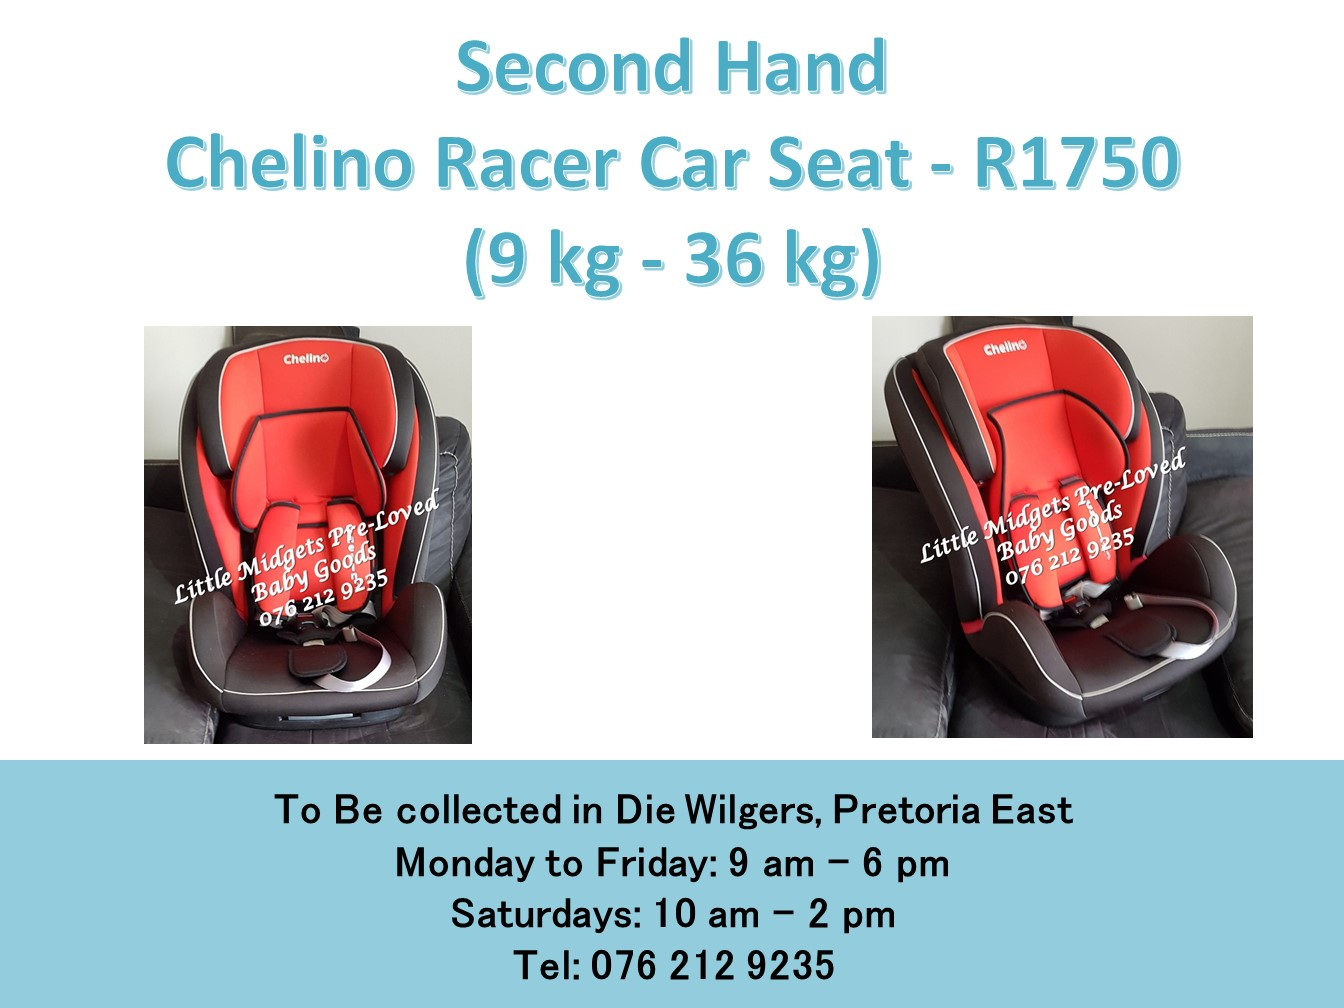 Second Hand Chelino Racer Car Seat 9 Kg 36 Kg Junk Mail